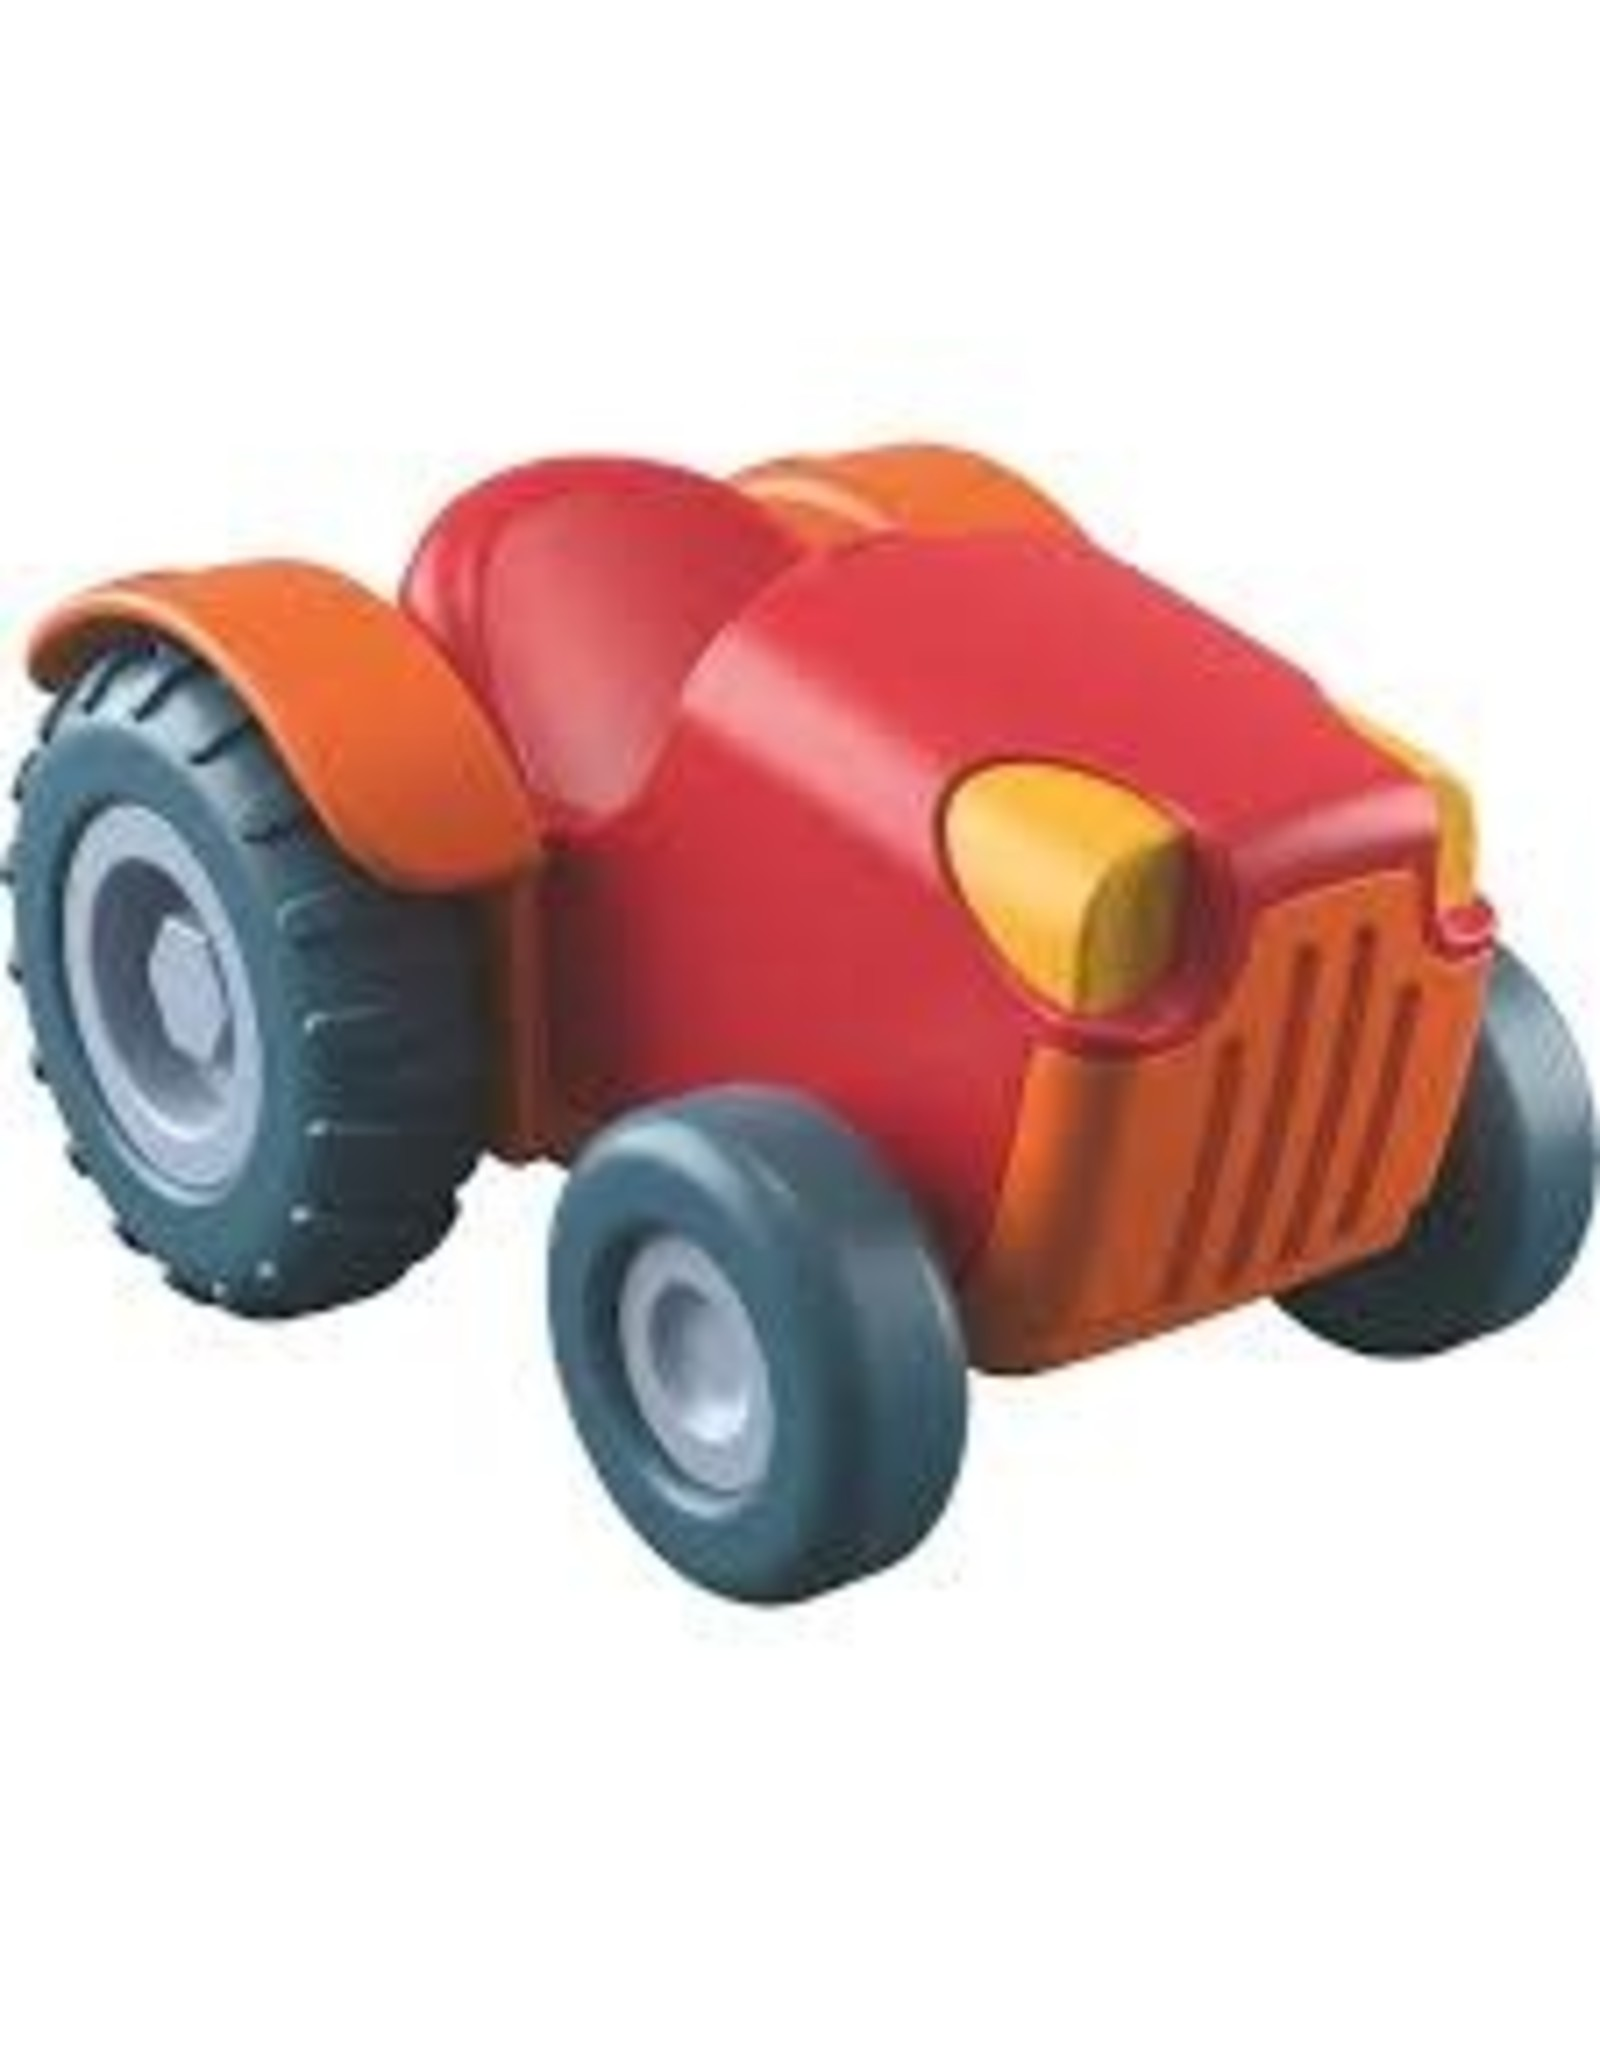 Haba Little Friends, Tractor